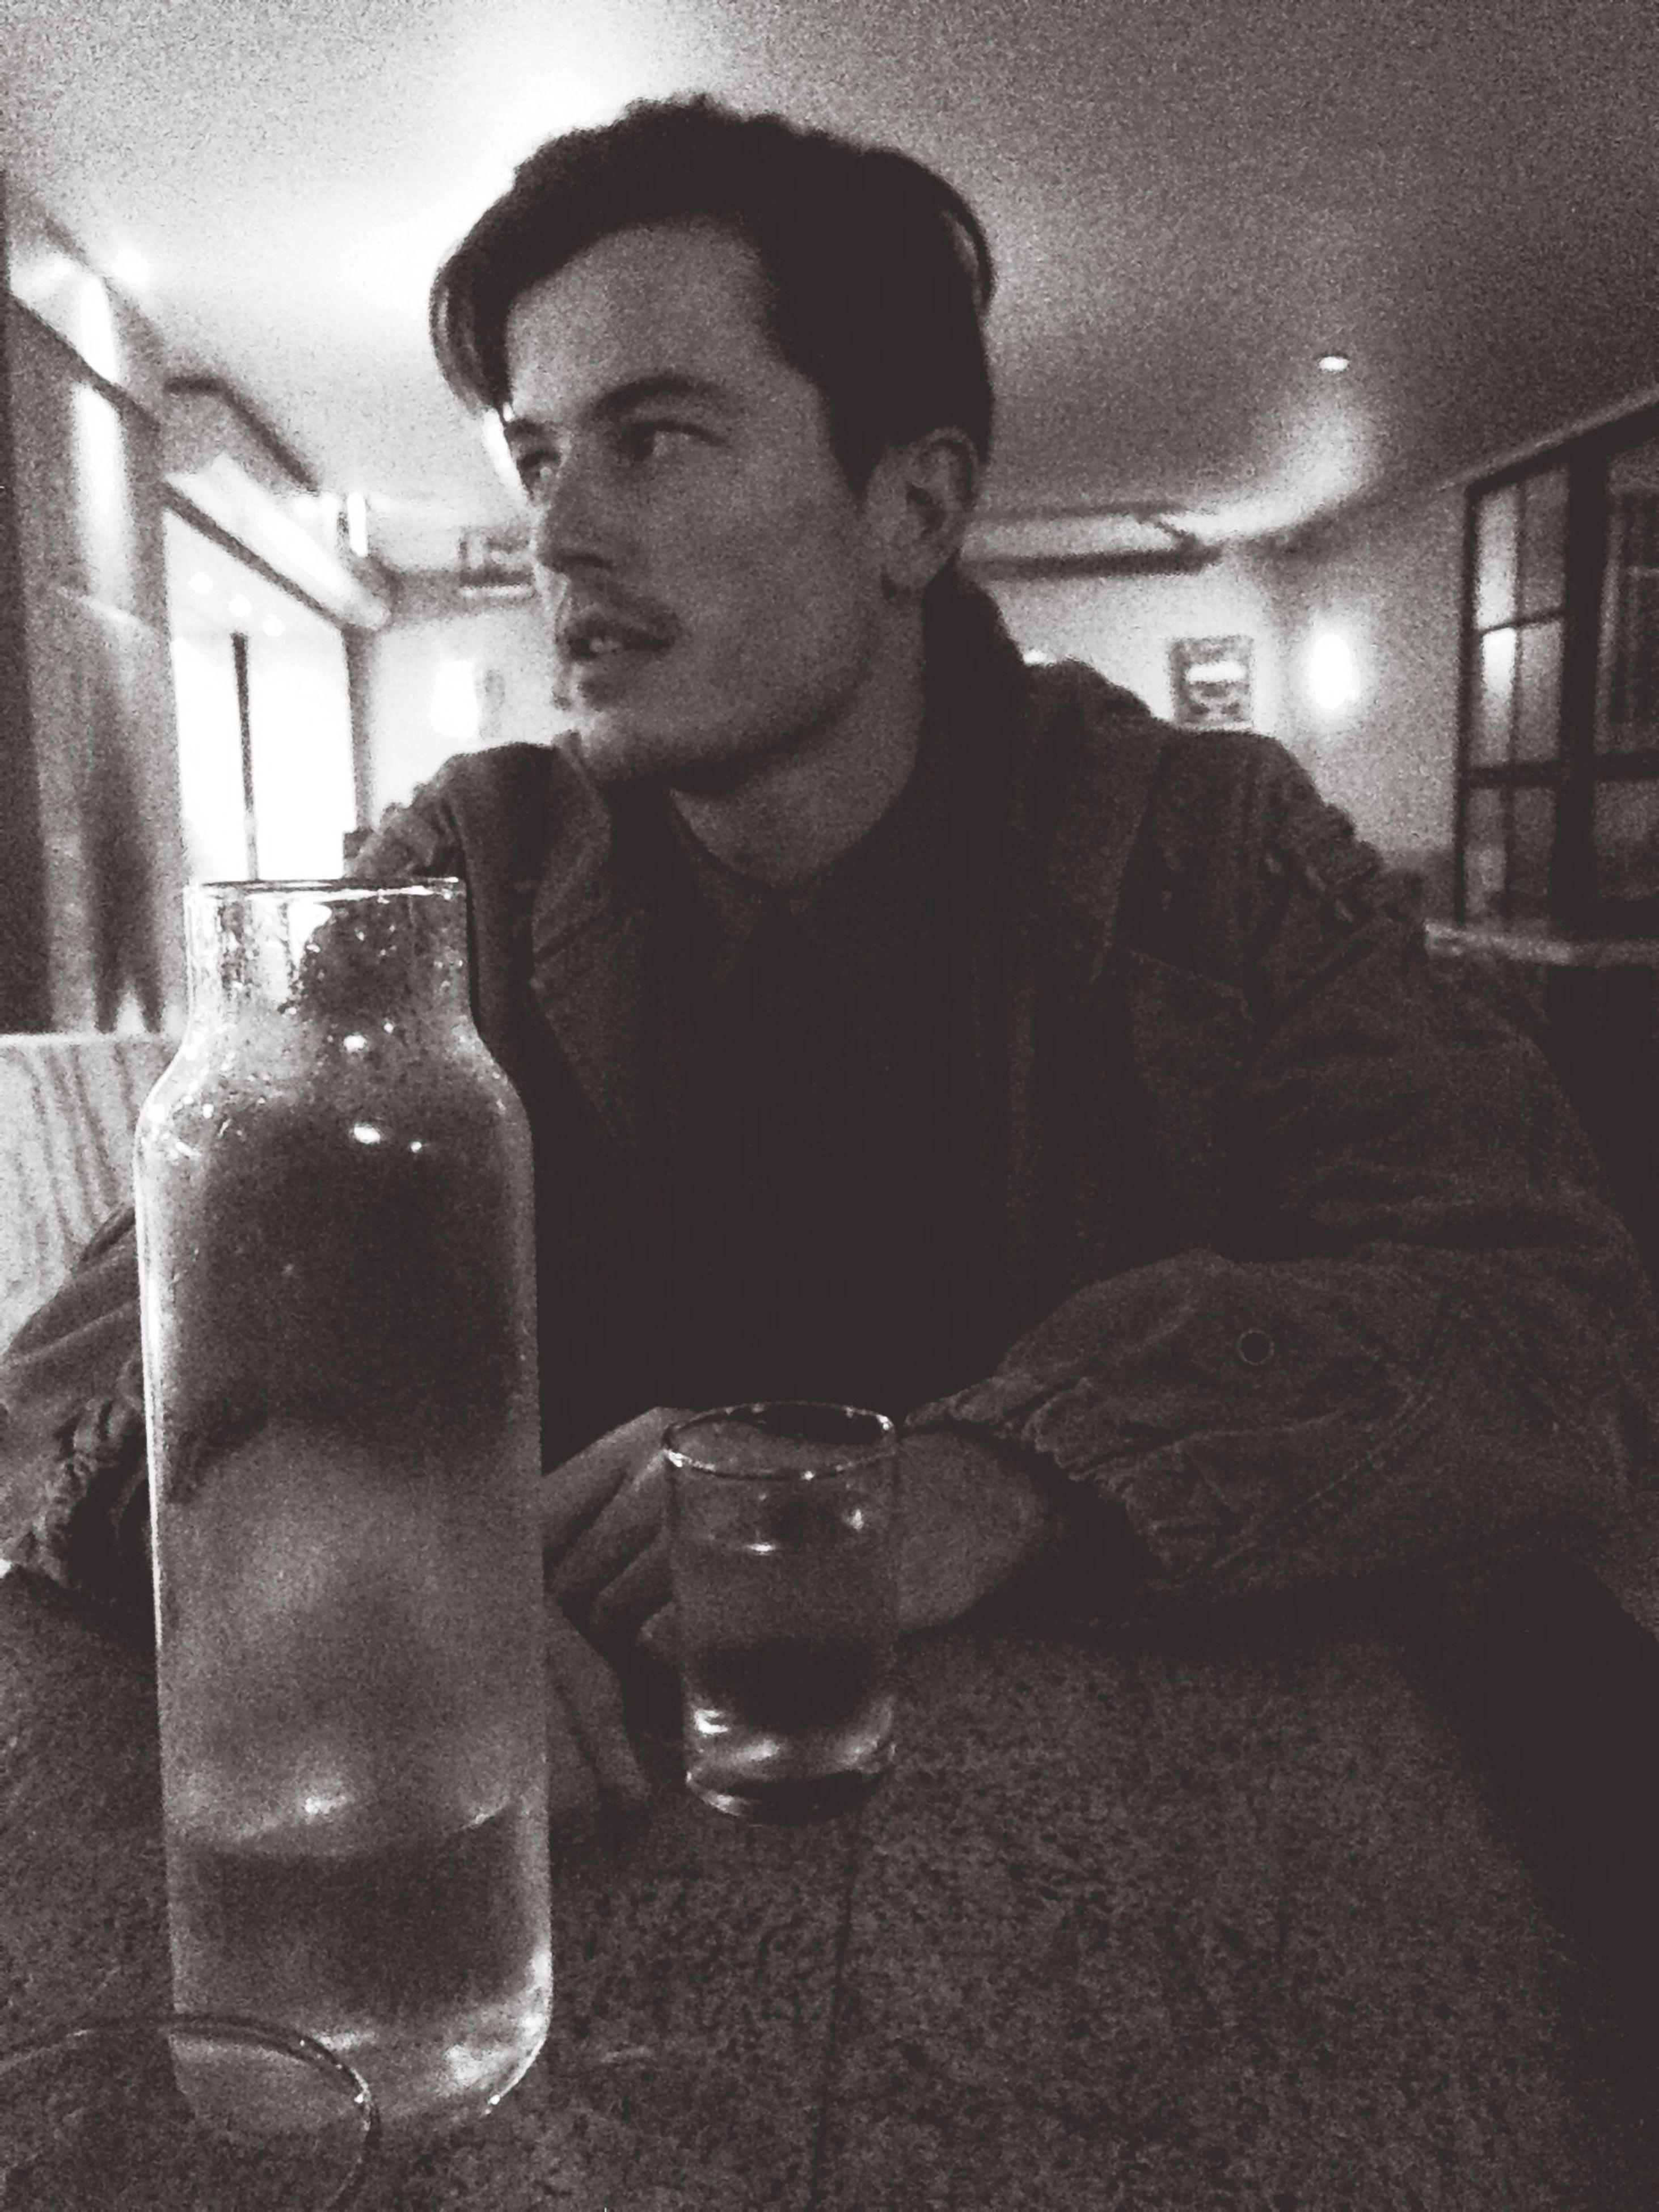 indoors, food and drink, drink, refreshment, person, lifestyles, table, leisure activity, front view, young men, looking at camera, casual clothing, holding, restaurant, freshness, home interior, drinking glass, sitting